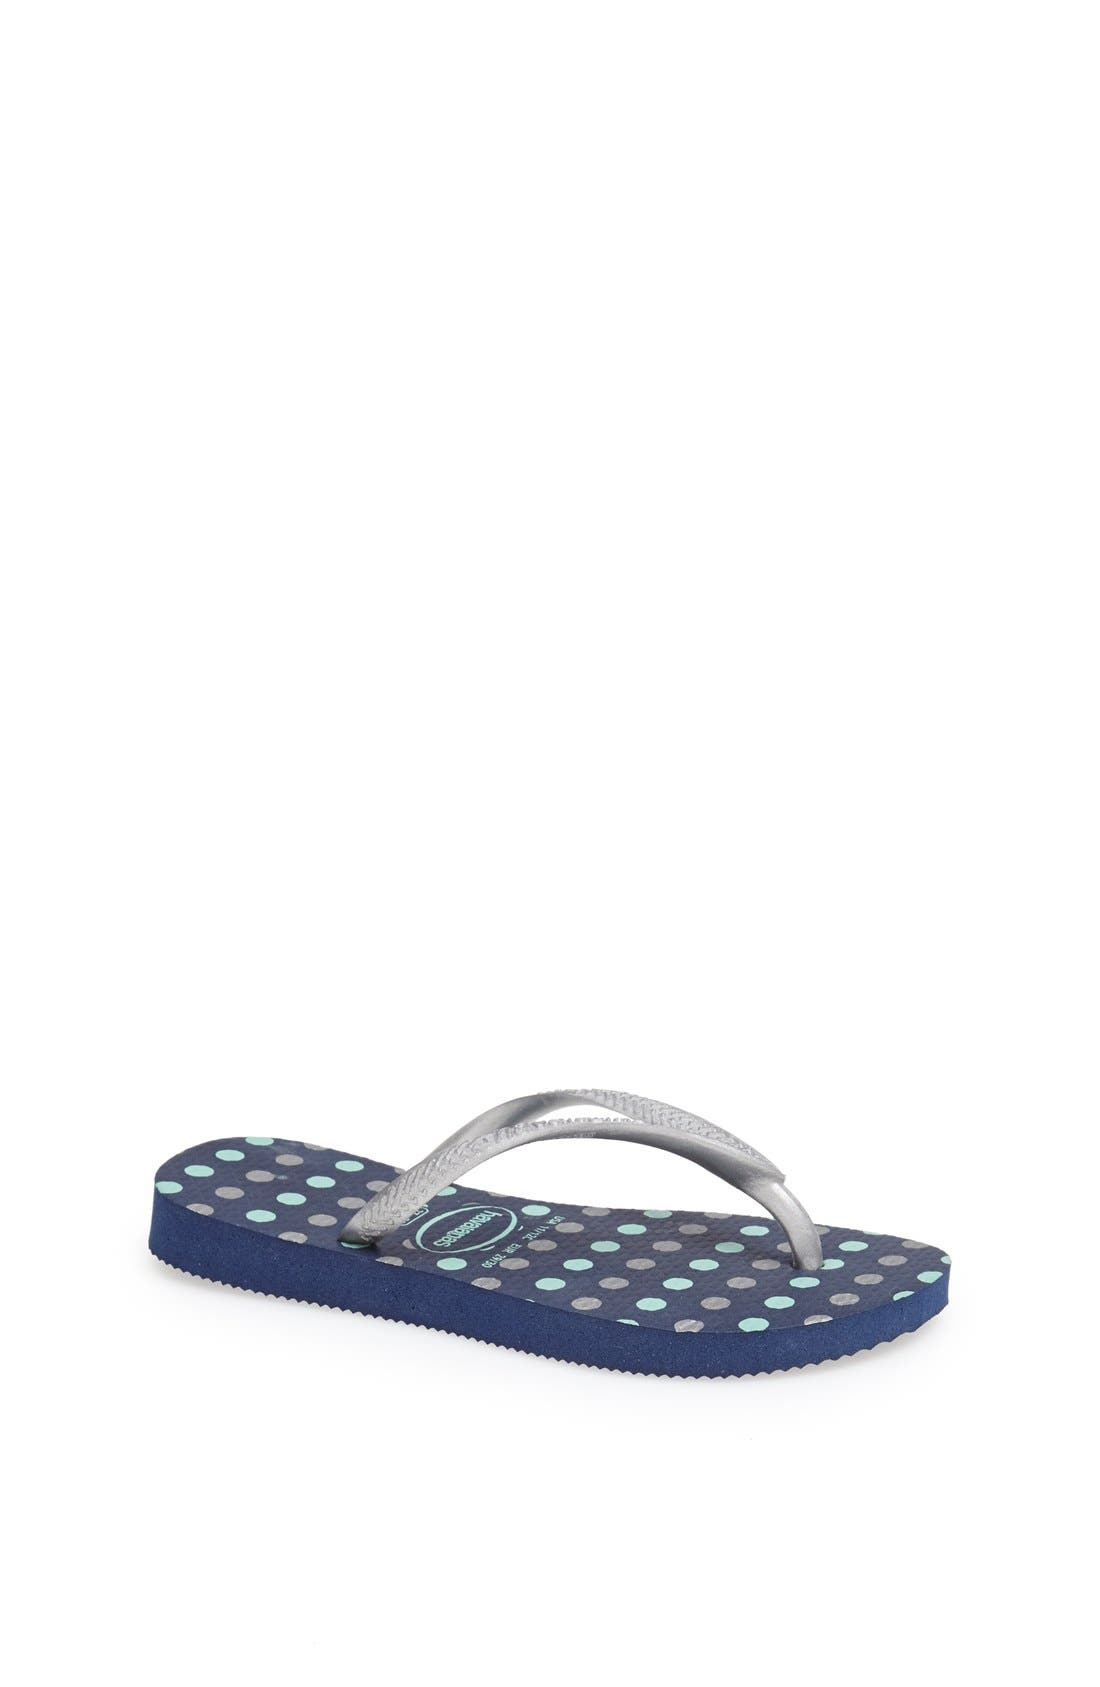 Alternate Image 1 Selected - Havaianas 'Slim Fresh' Flip Flop (Toddler & Little Kid)